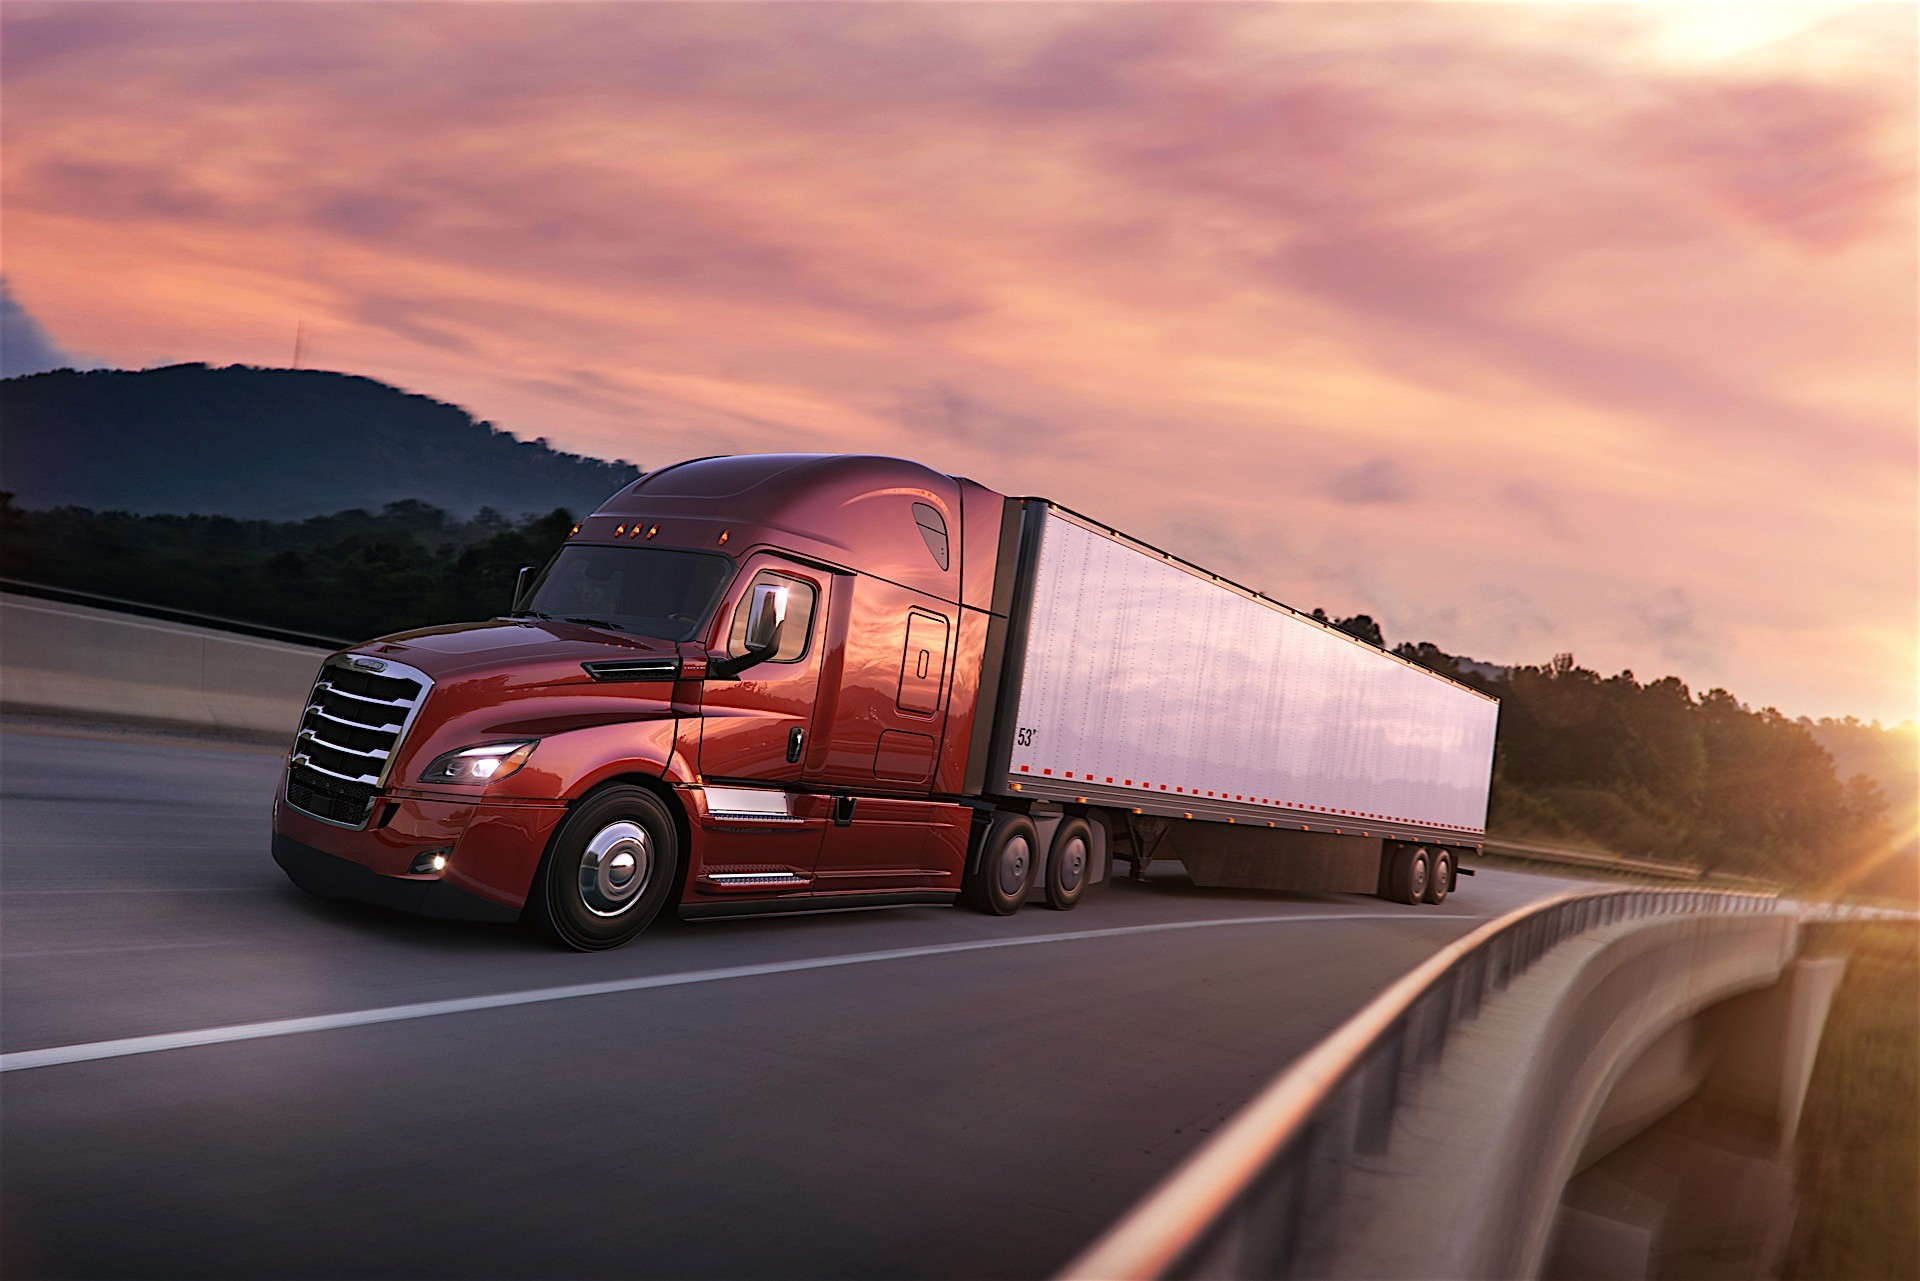 Daimler Trucks North America Presents The All New Freightliner Cascadia Its Mo on 2017 dodge viper